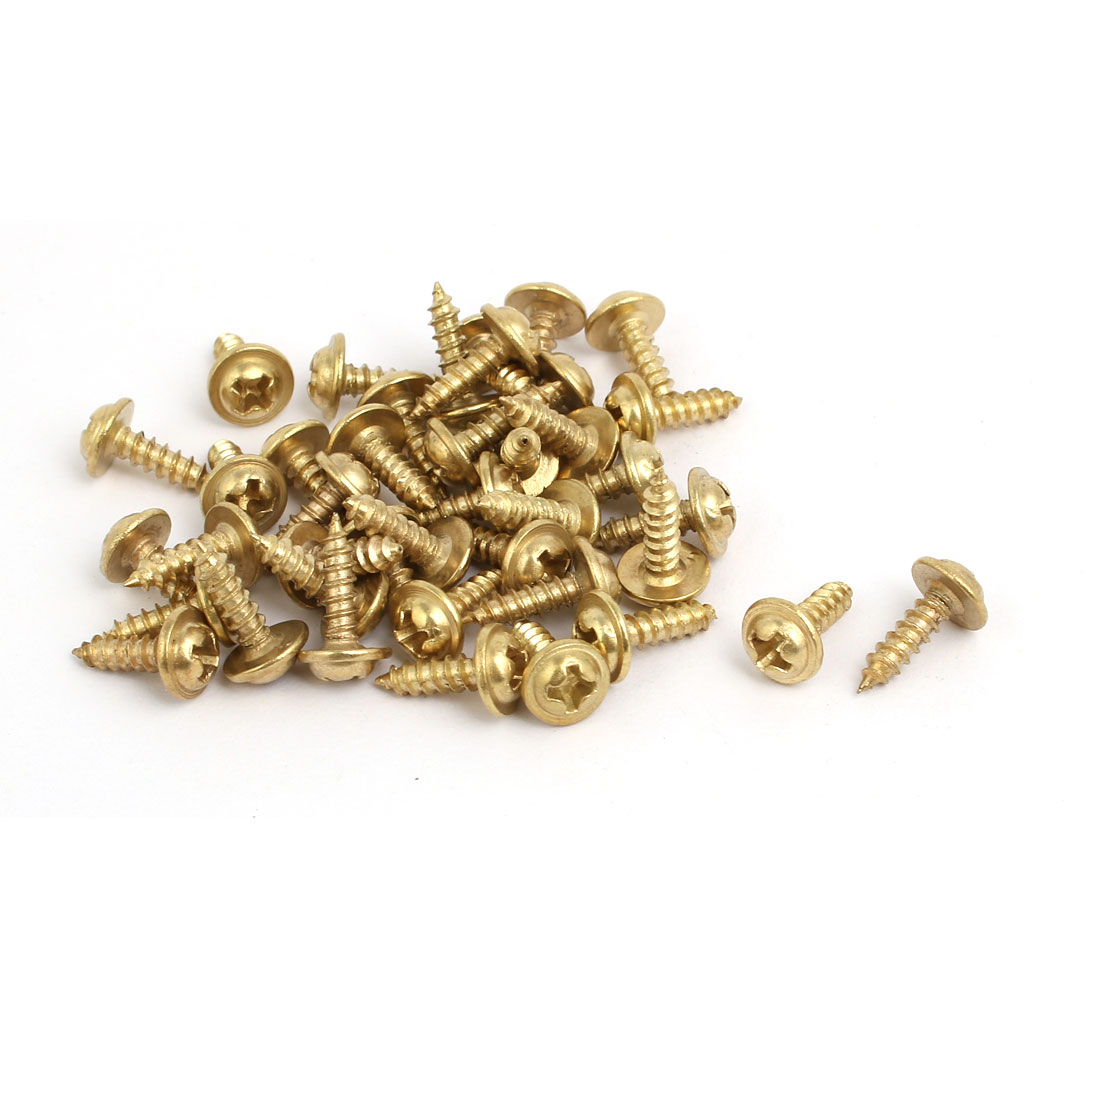 Uxcell 40pcs 40mmx12mmx1mm Picture Frame Turn Button Photo Turnbutton Gold Tone w Screw - image 3 of 4